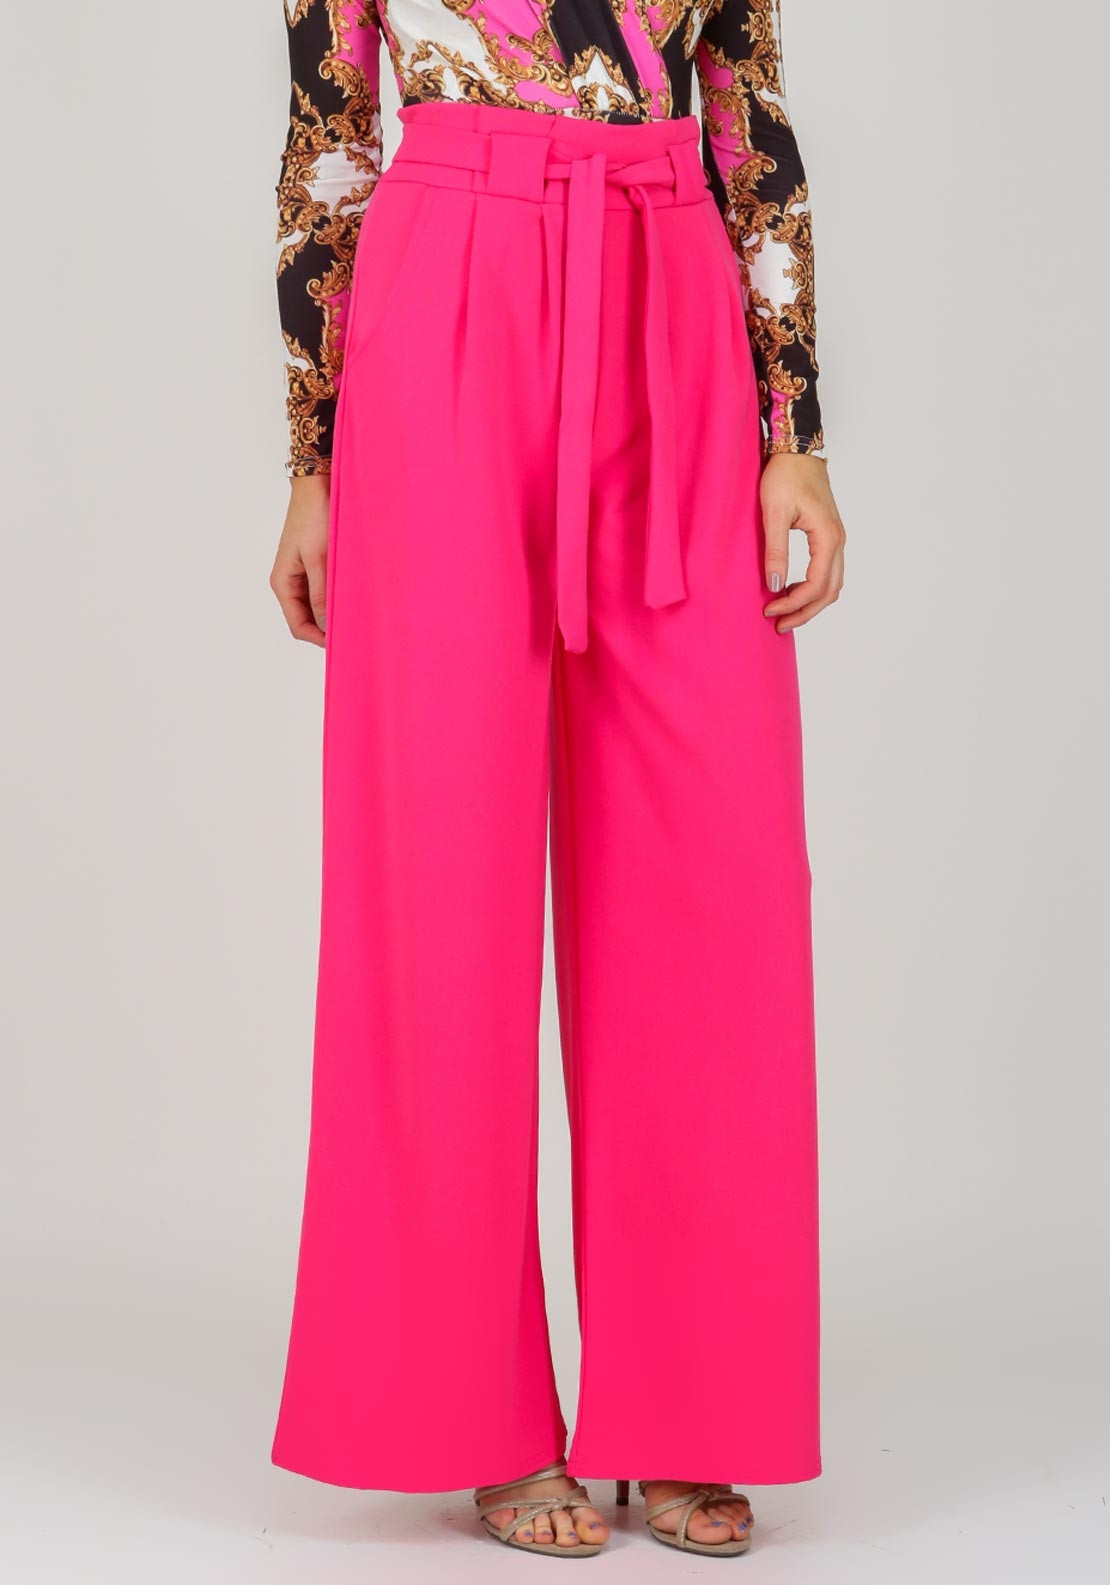 Boutique High Waist Wide Leg Trousers, Pink